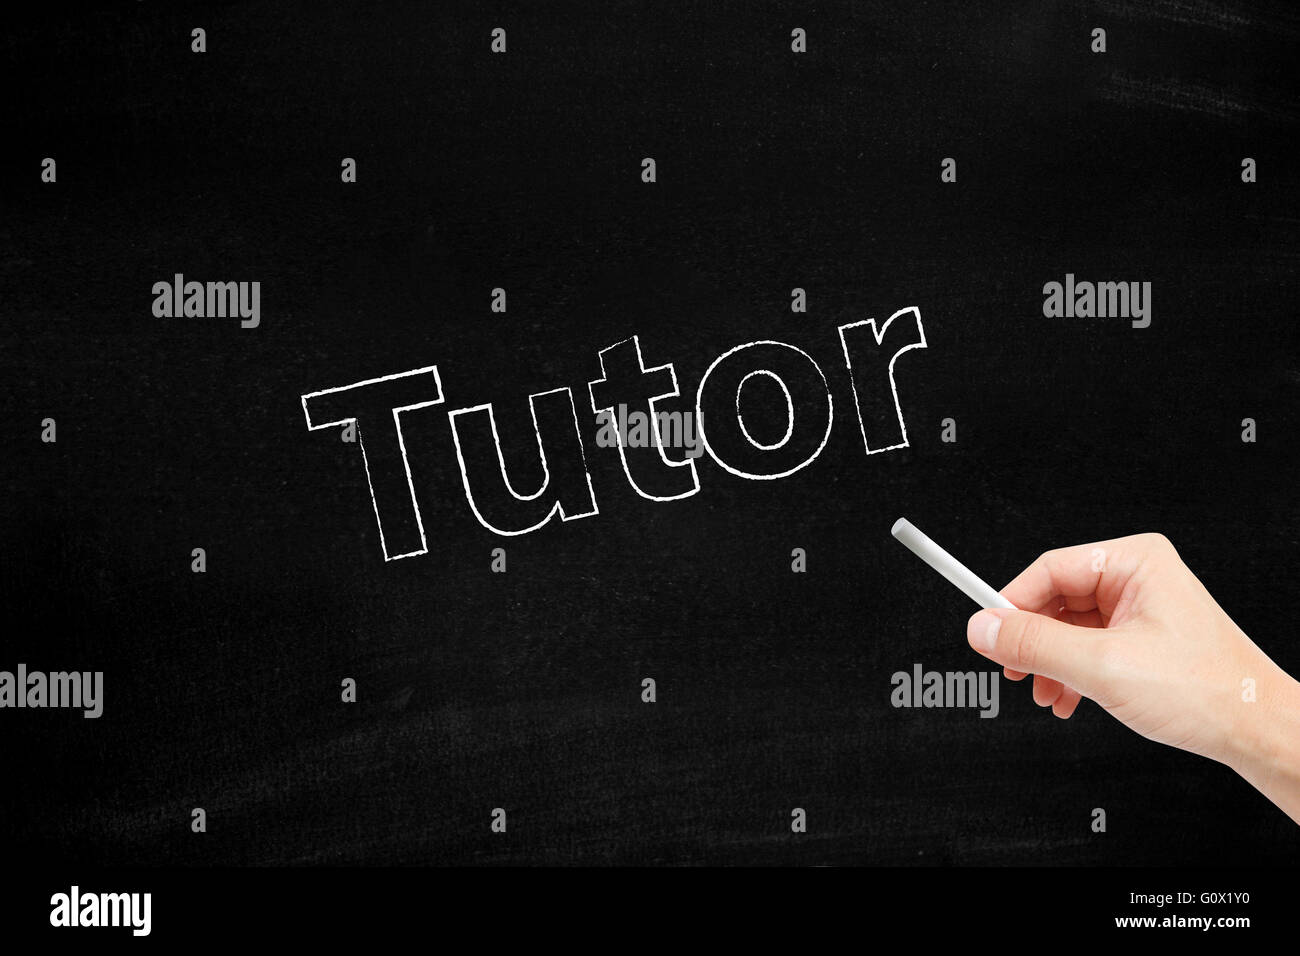 Tutor written with chalk - Stock Image